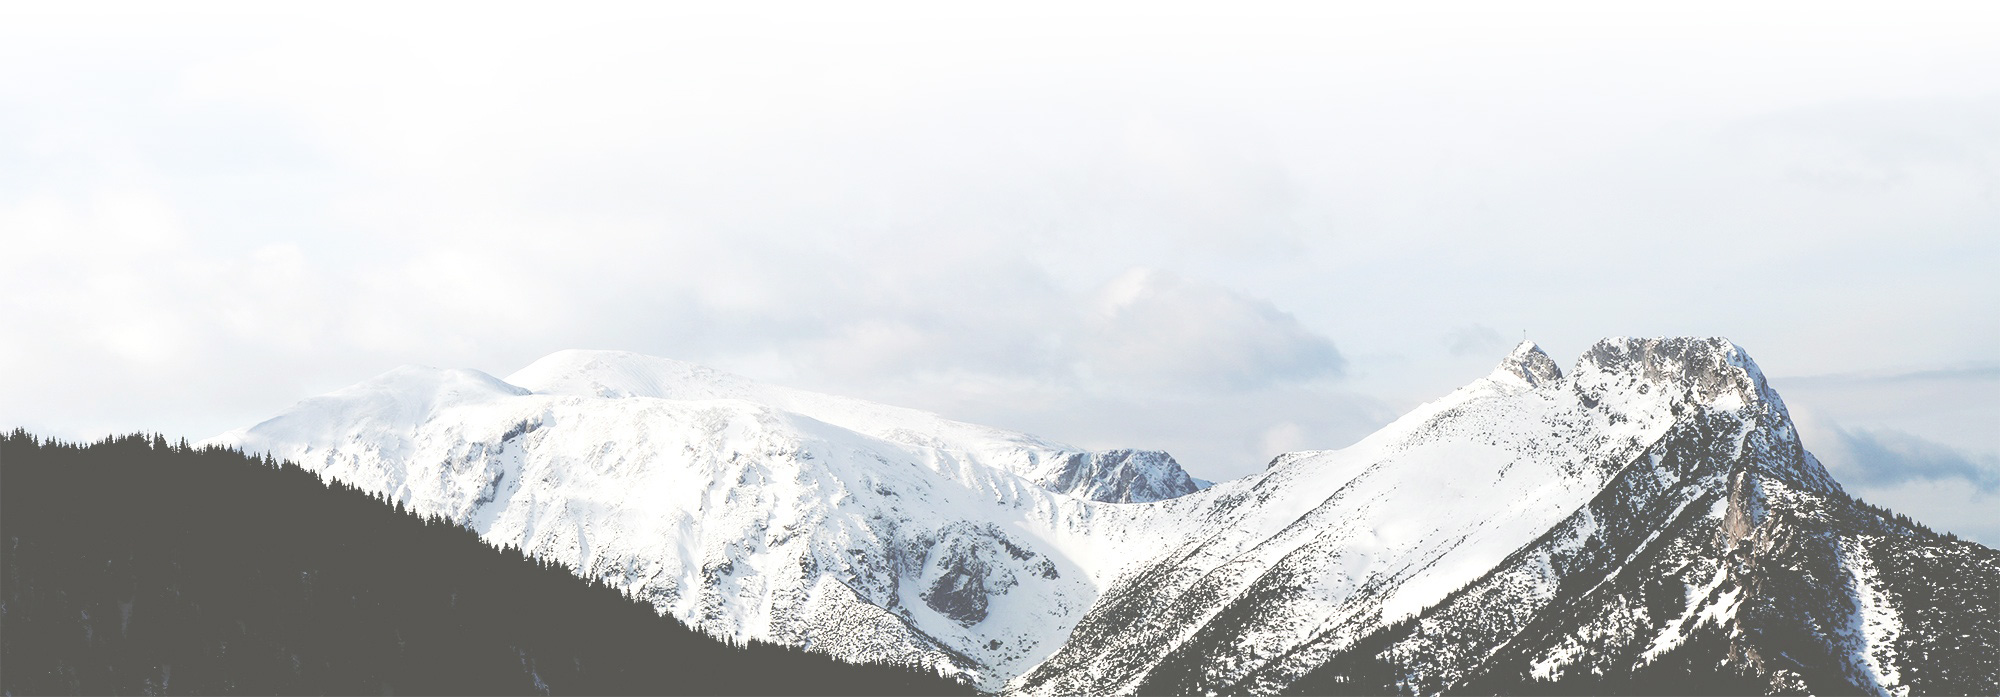 Be the one to stand out in the crowd